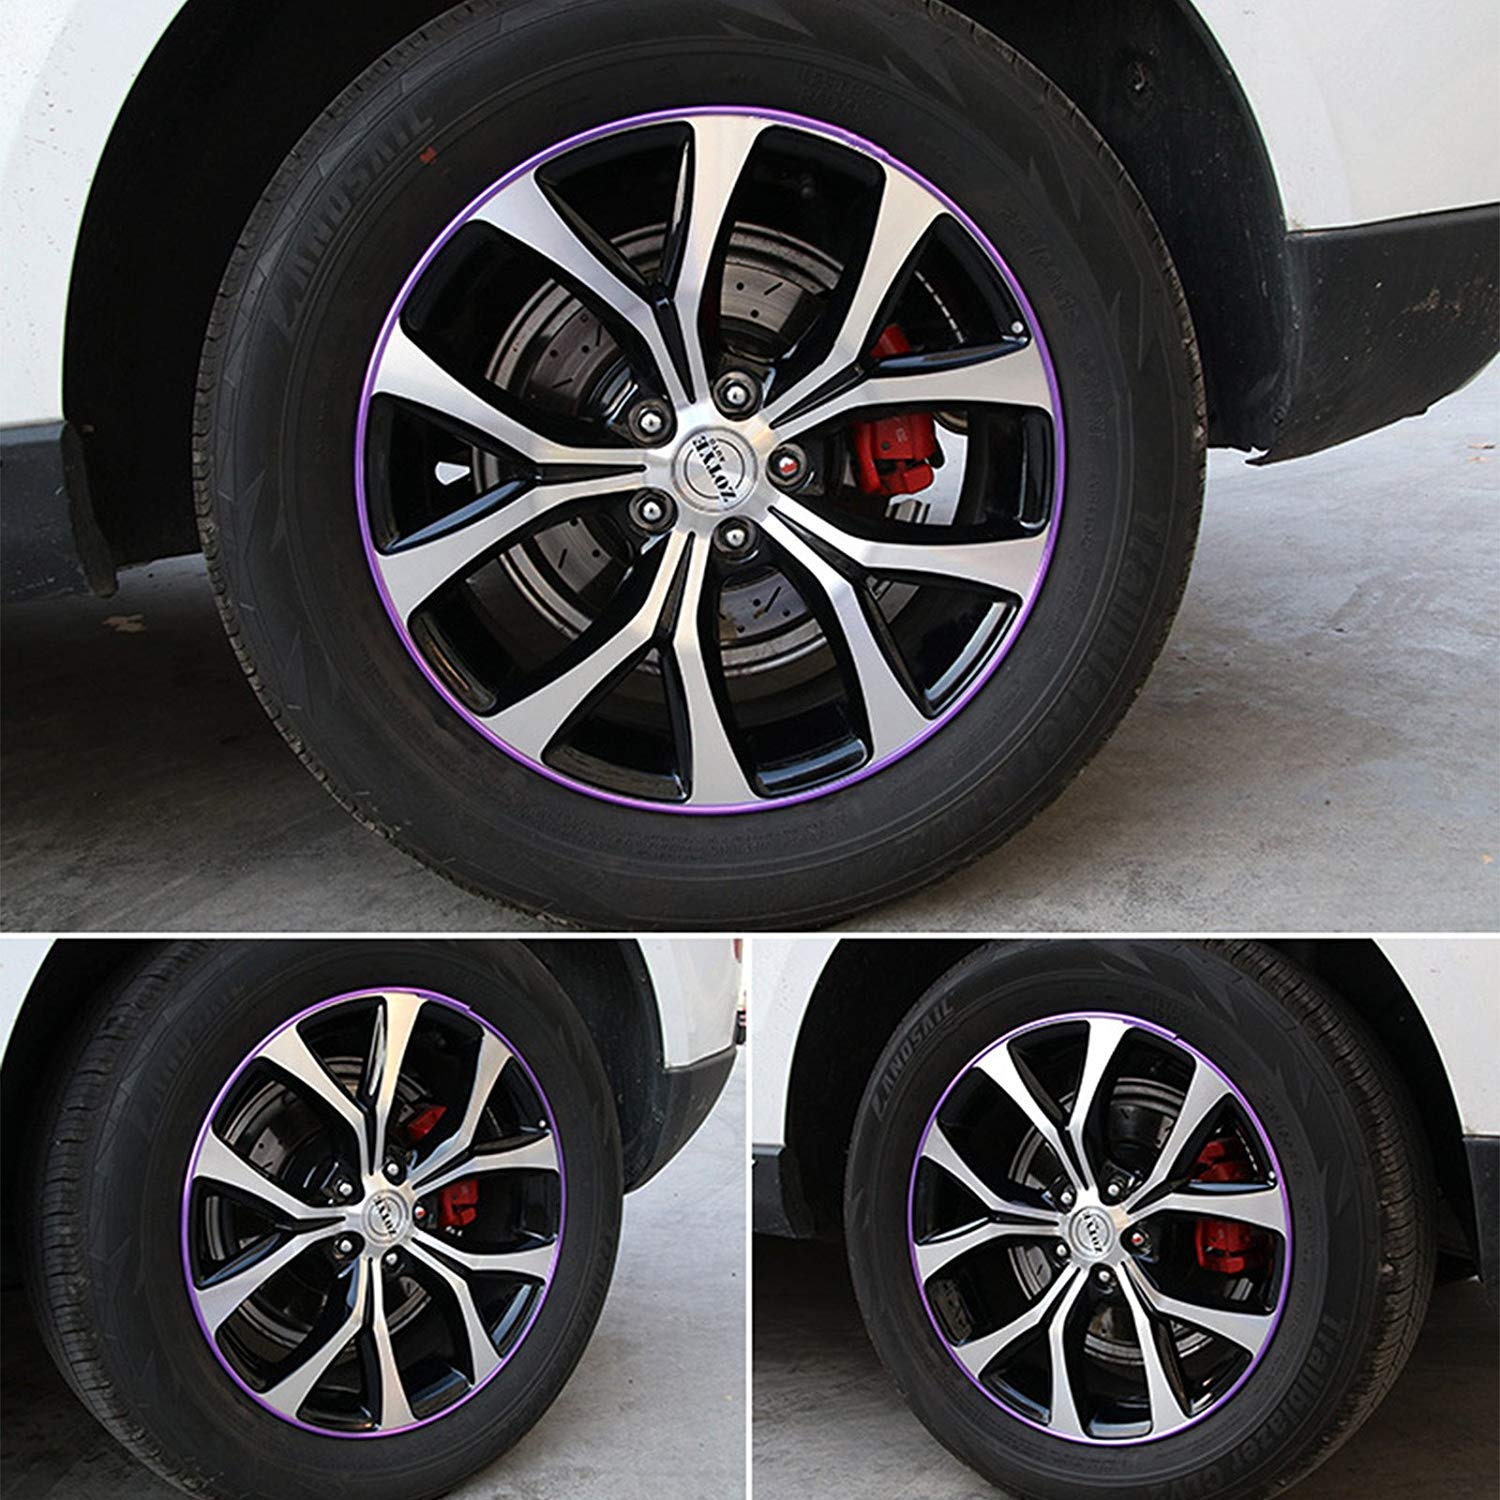 8Meter Universal Car Wheel Hub Rim Protector Purple GOGOLO Auto Tire Rim Edge Guard Decoration Moulding Strip for All Vehicle and Motorcycle Wheels from 16 to 23 1 Pack